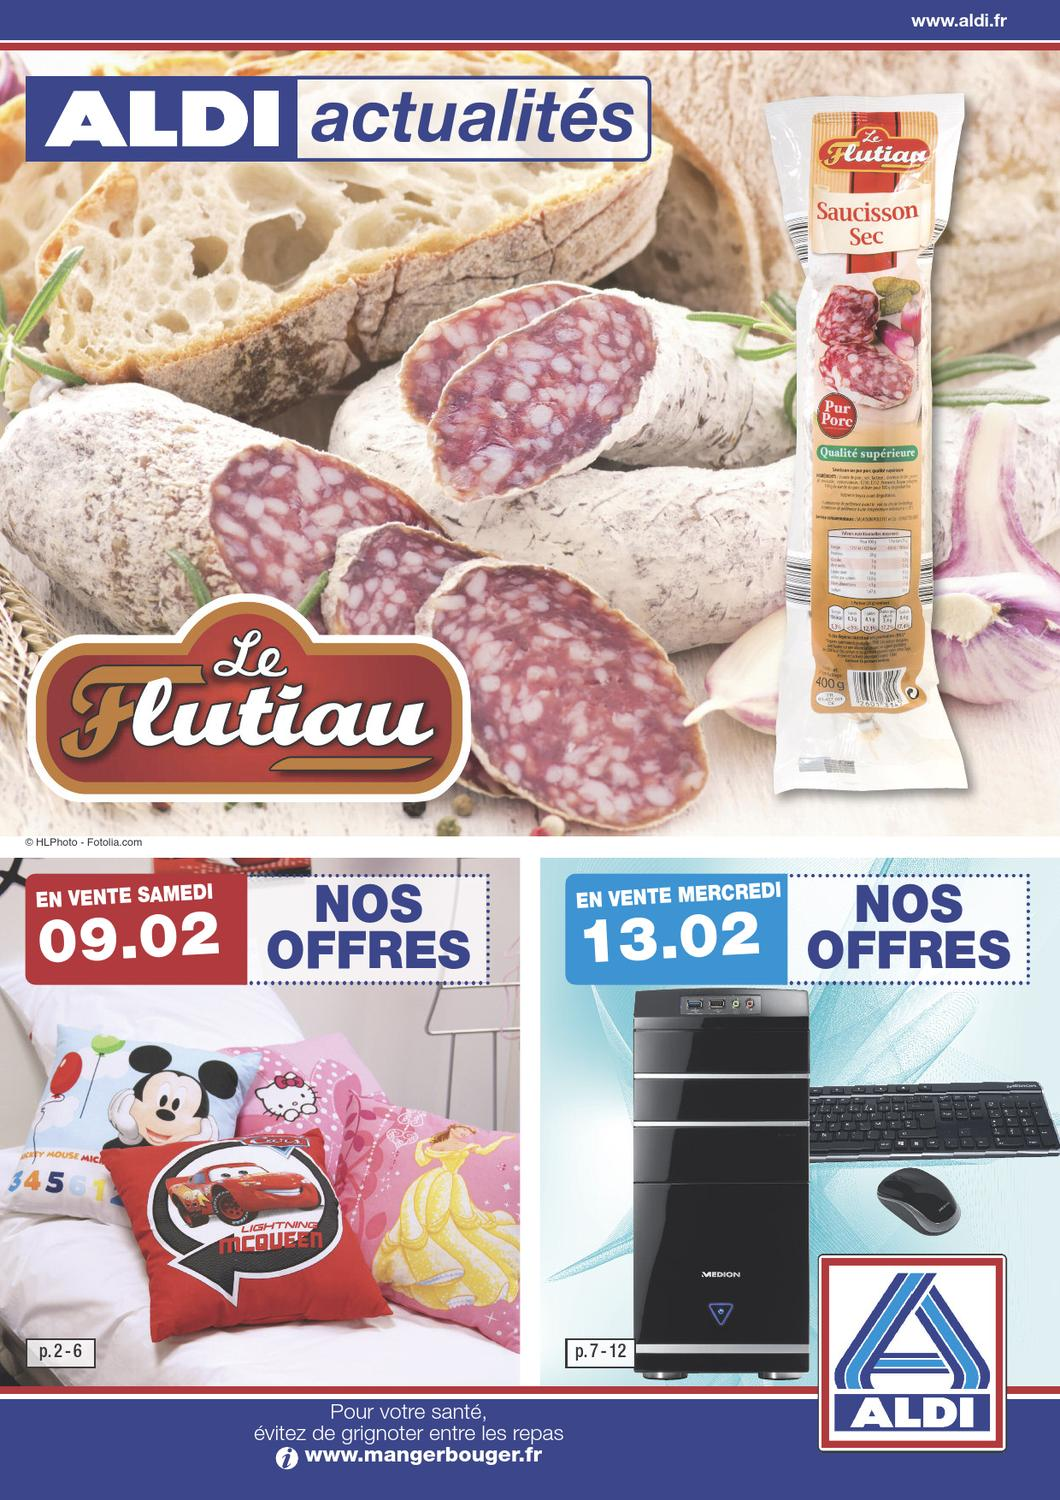 Catalogue 13 9 2013 Aldi By Février Issuu rCeWQEdxBo